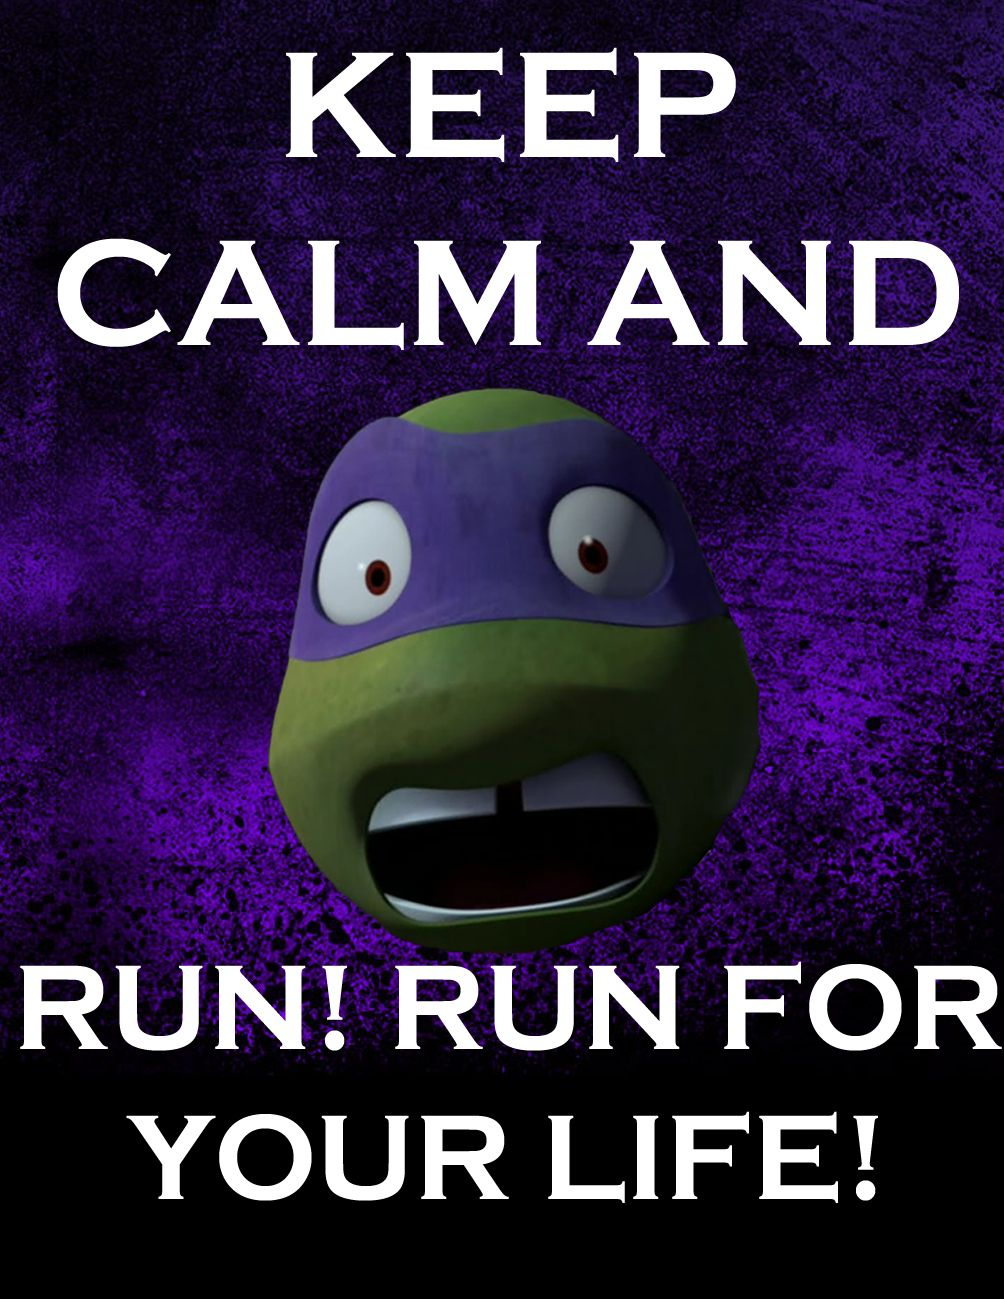 Ninja Turtle Quotes Keep Calm Donniecleverskeleton.deviantart On Deviantart